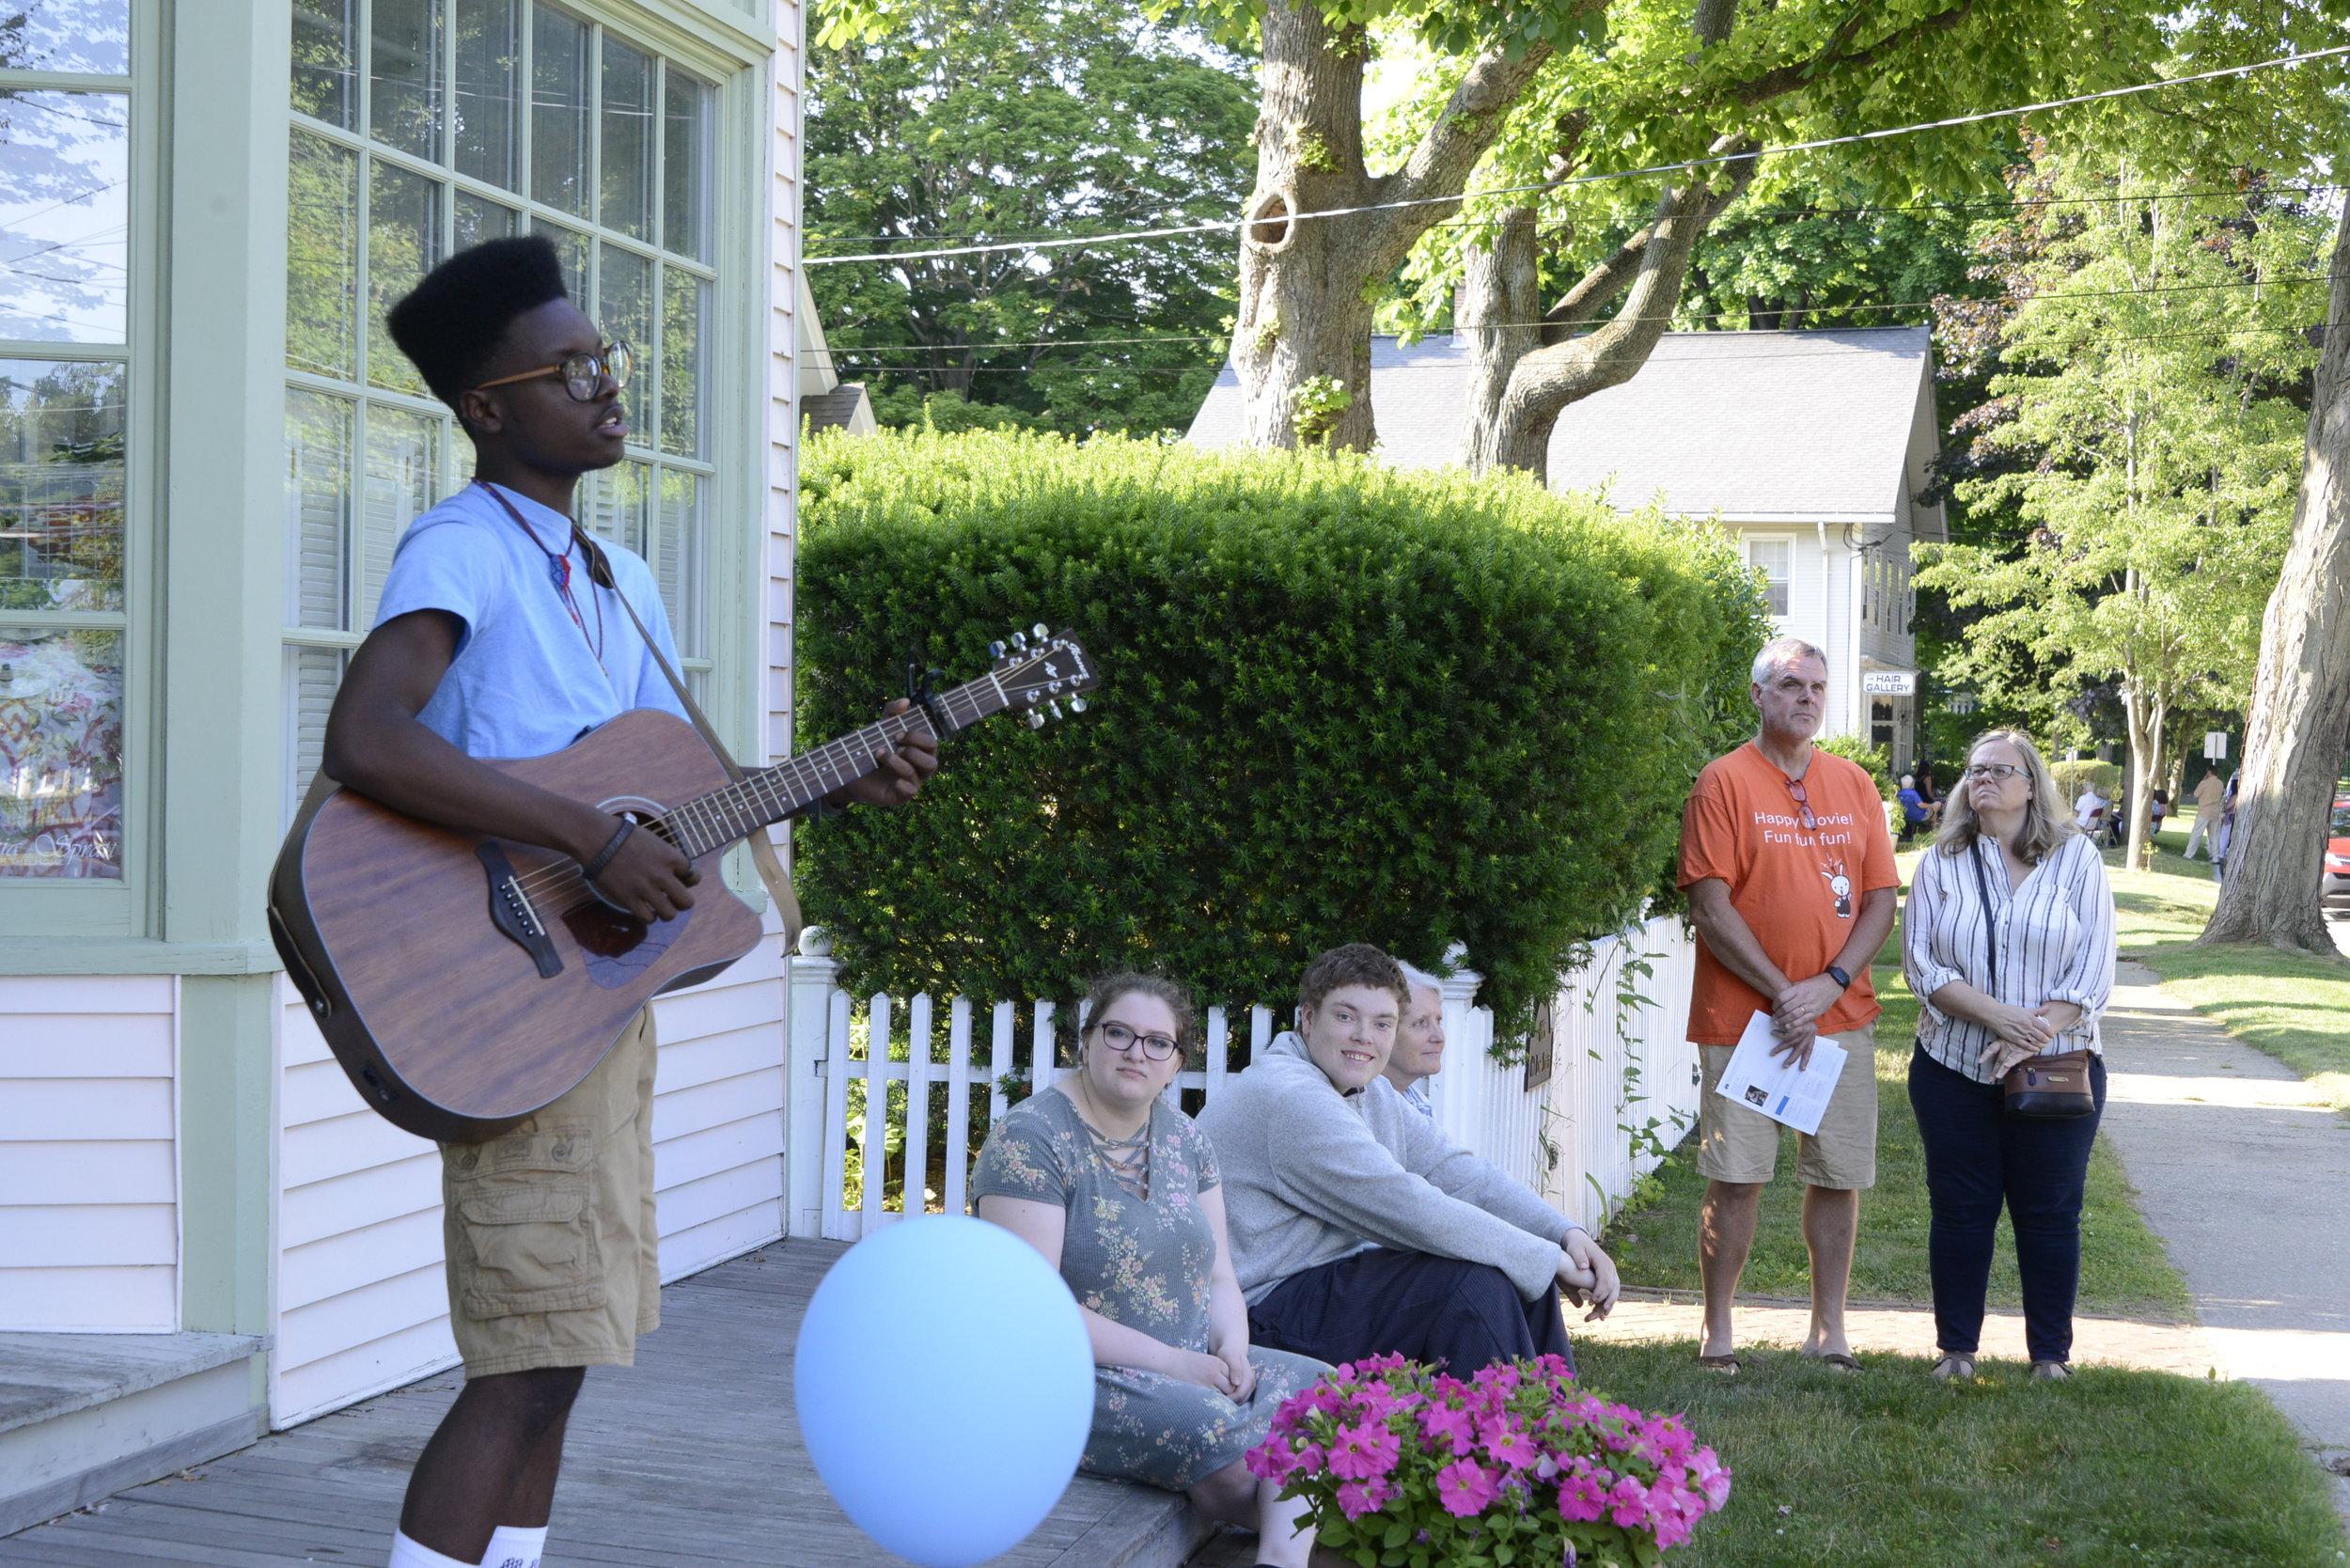 Chris Gregor plays in front of Patricia Spratt for the Home's storefront. Photo by A. Vincent Scarano Photographer.